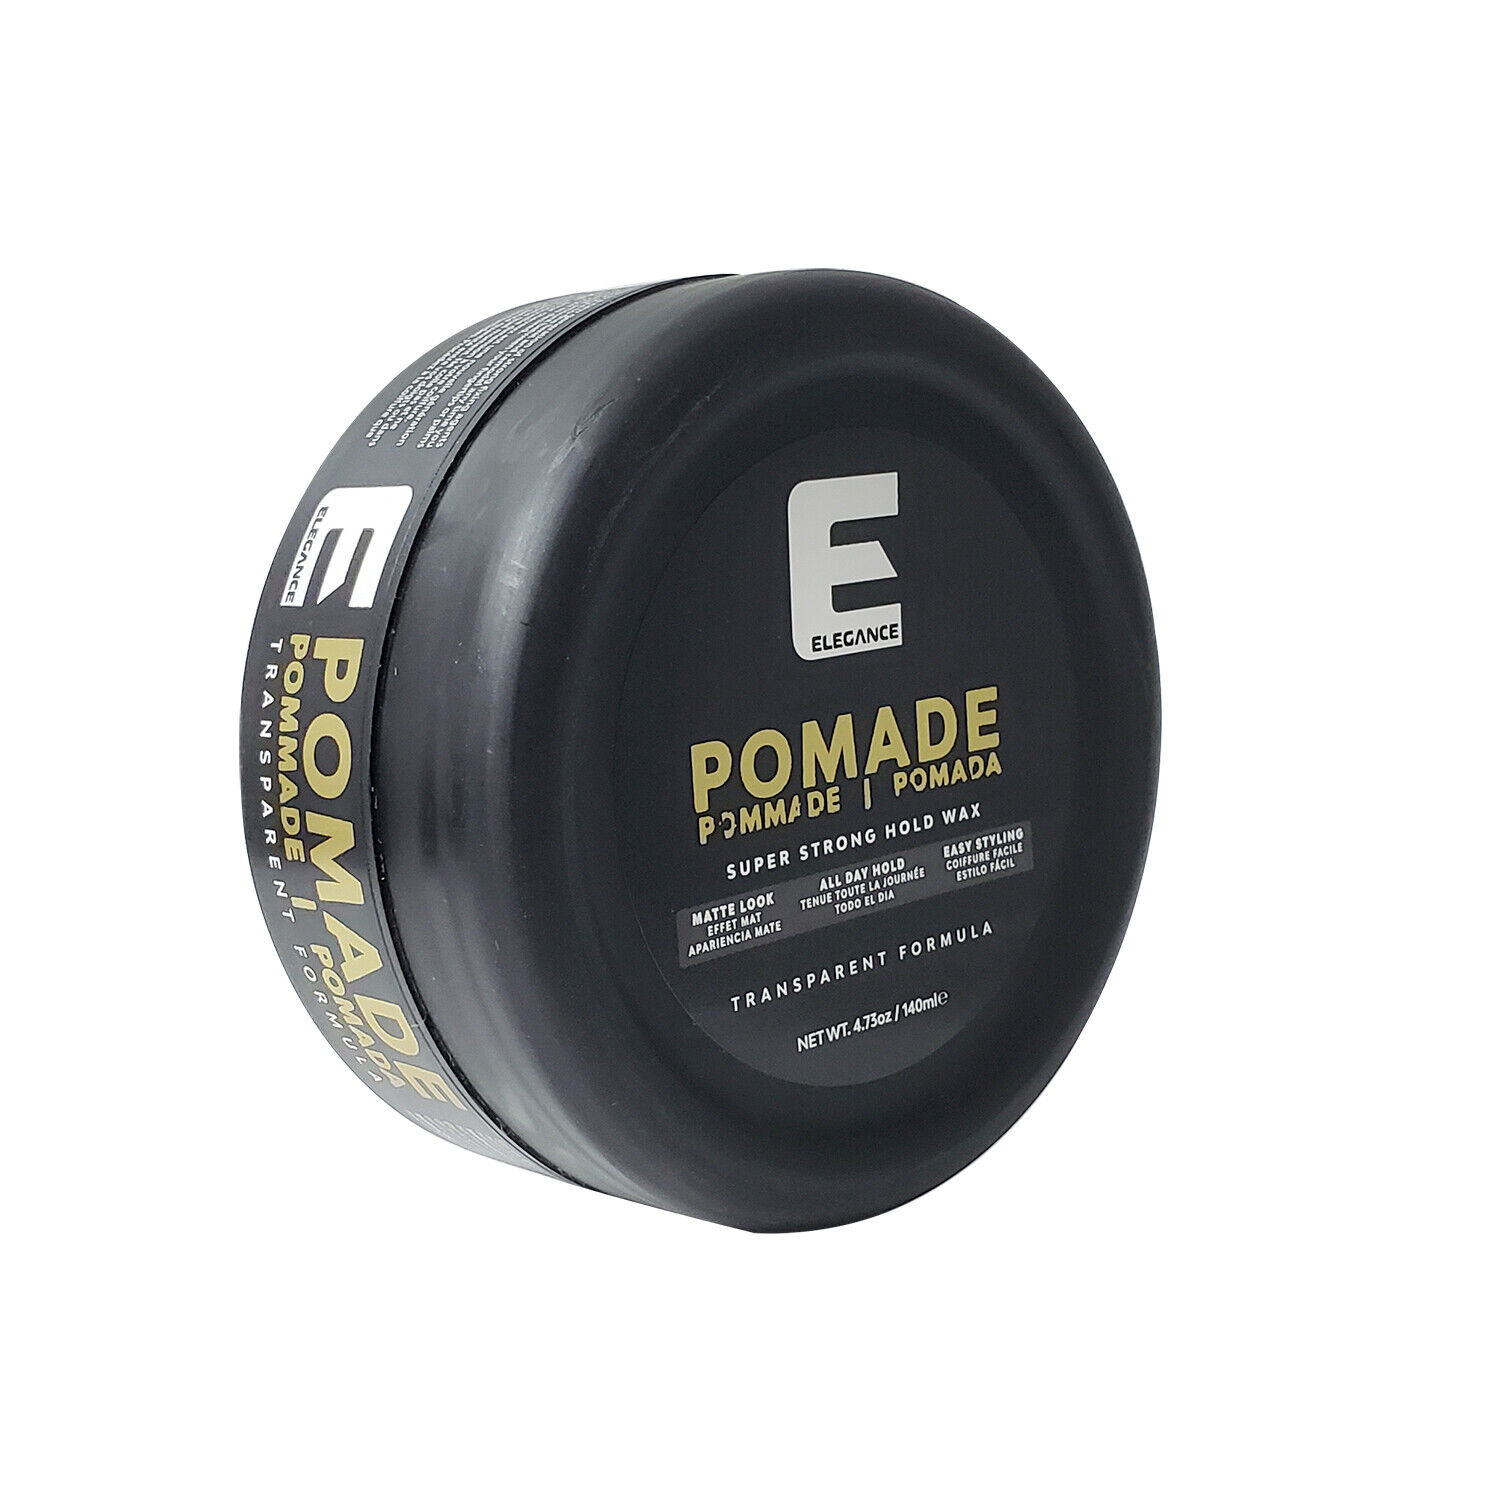 Elegance by SADA PACK Transparent Pomade Hair Wax 5oz Hair Care & Styling